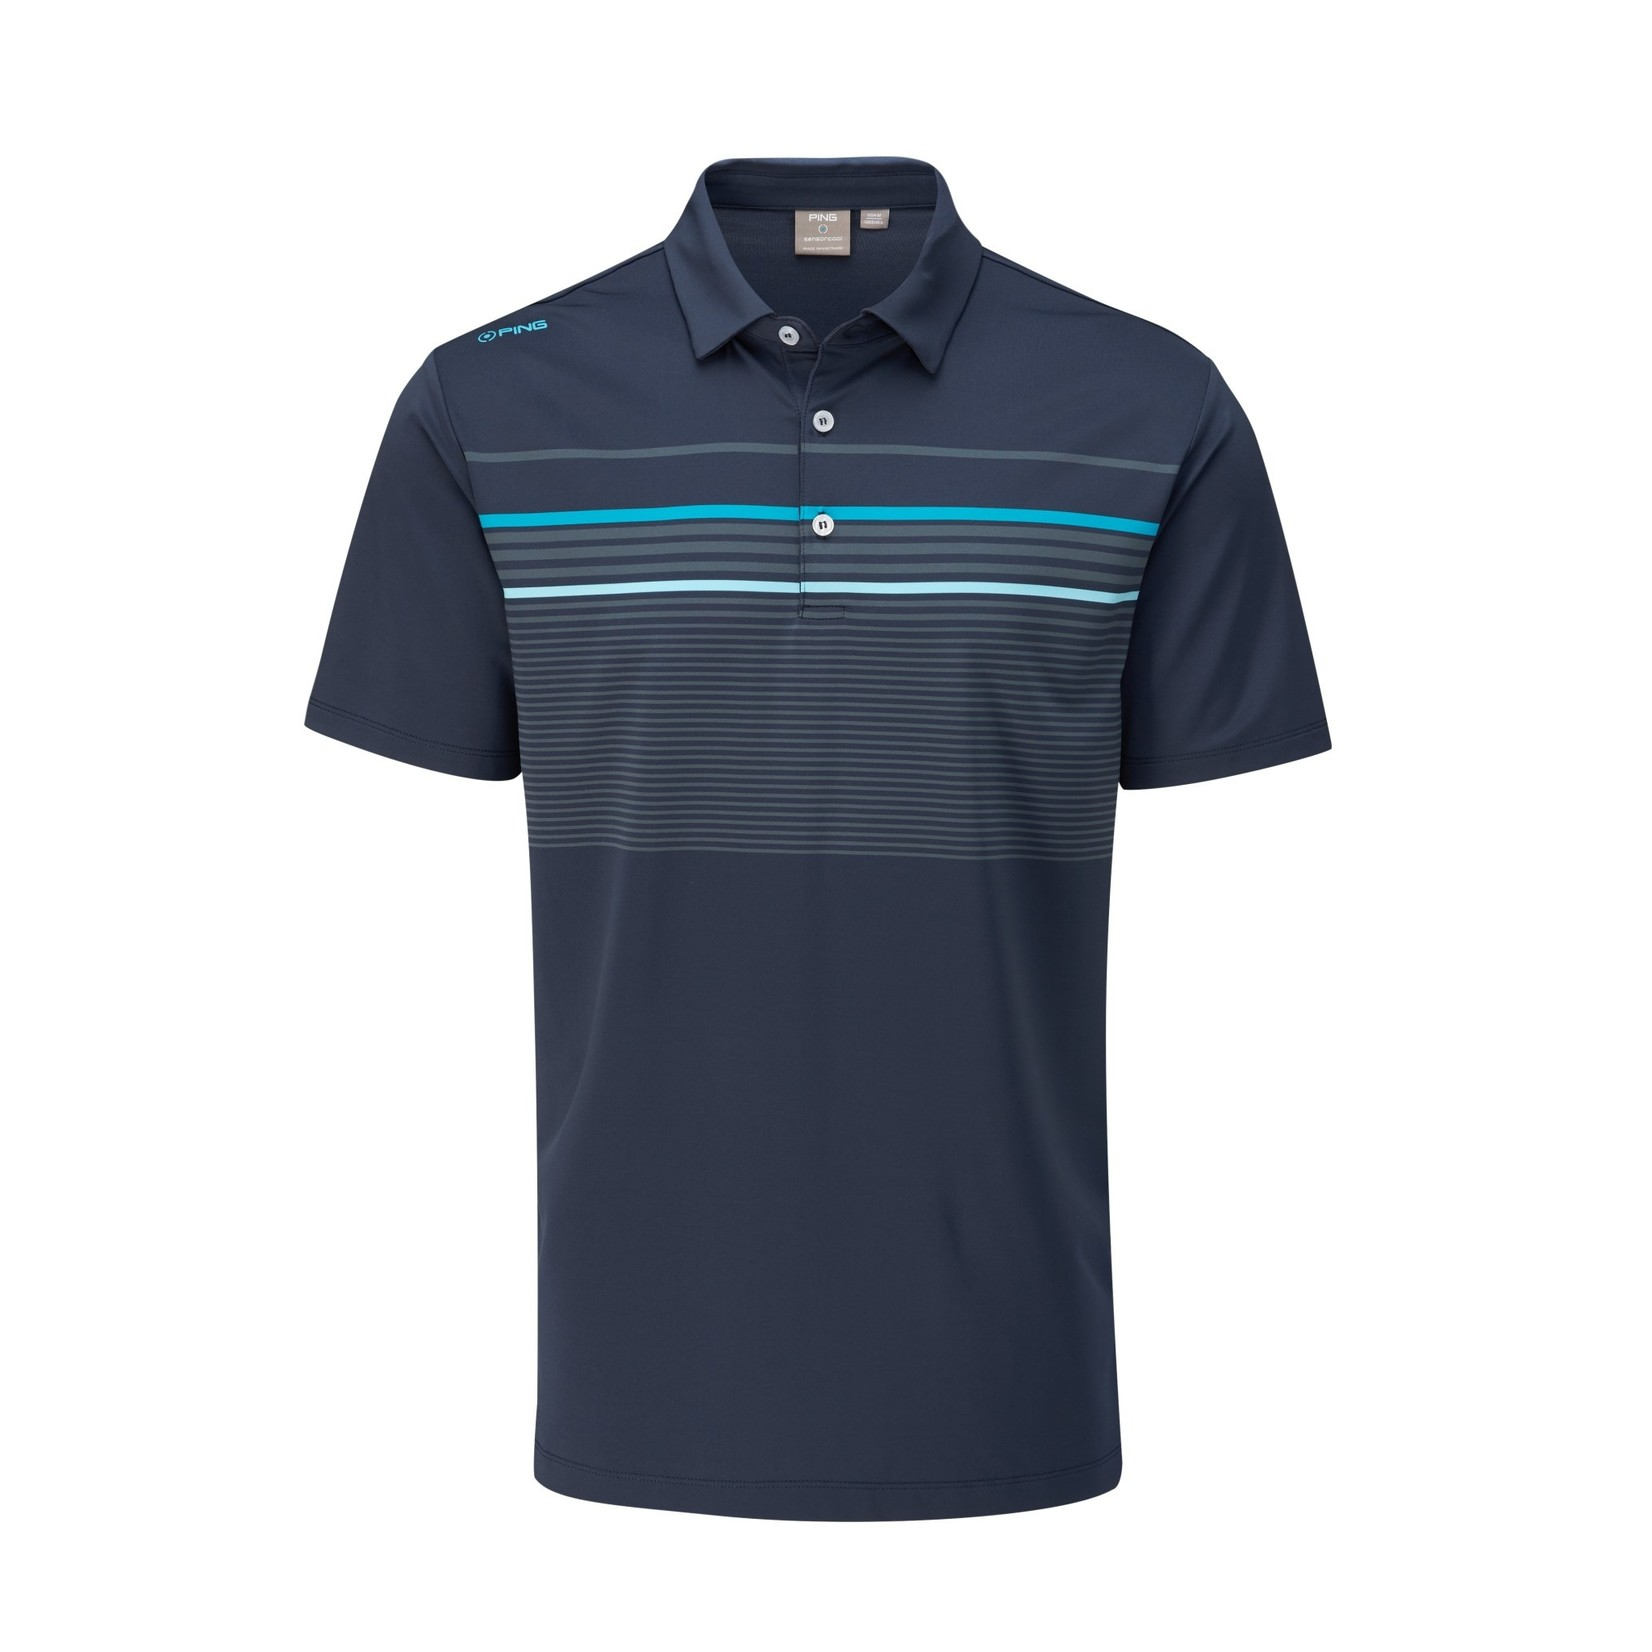 Ping Ping Spencer Polo - Oxford Blue Multi